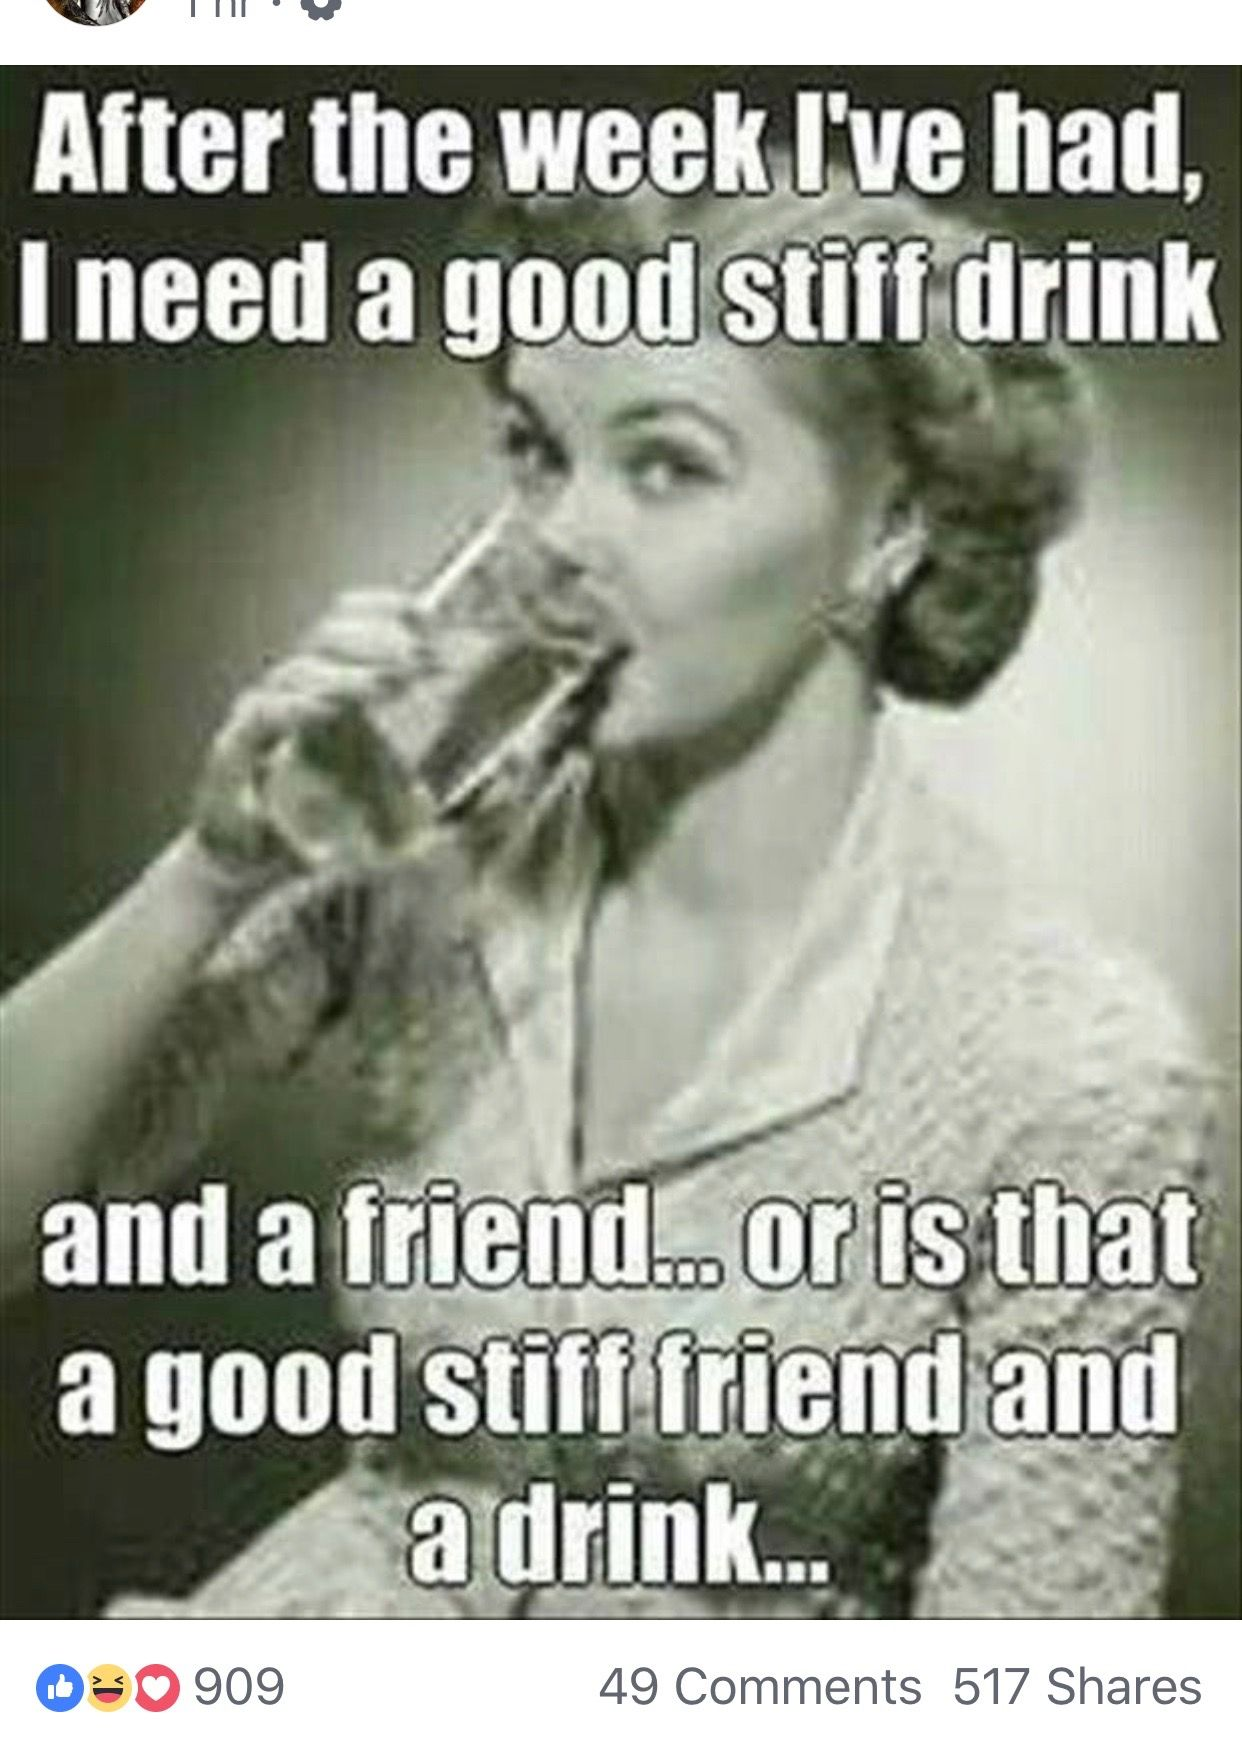 And tomorrow night we shall which i get looking forward to good friends and stiff drinks